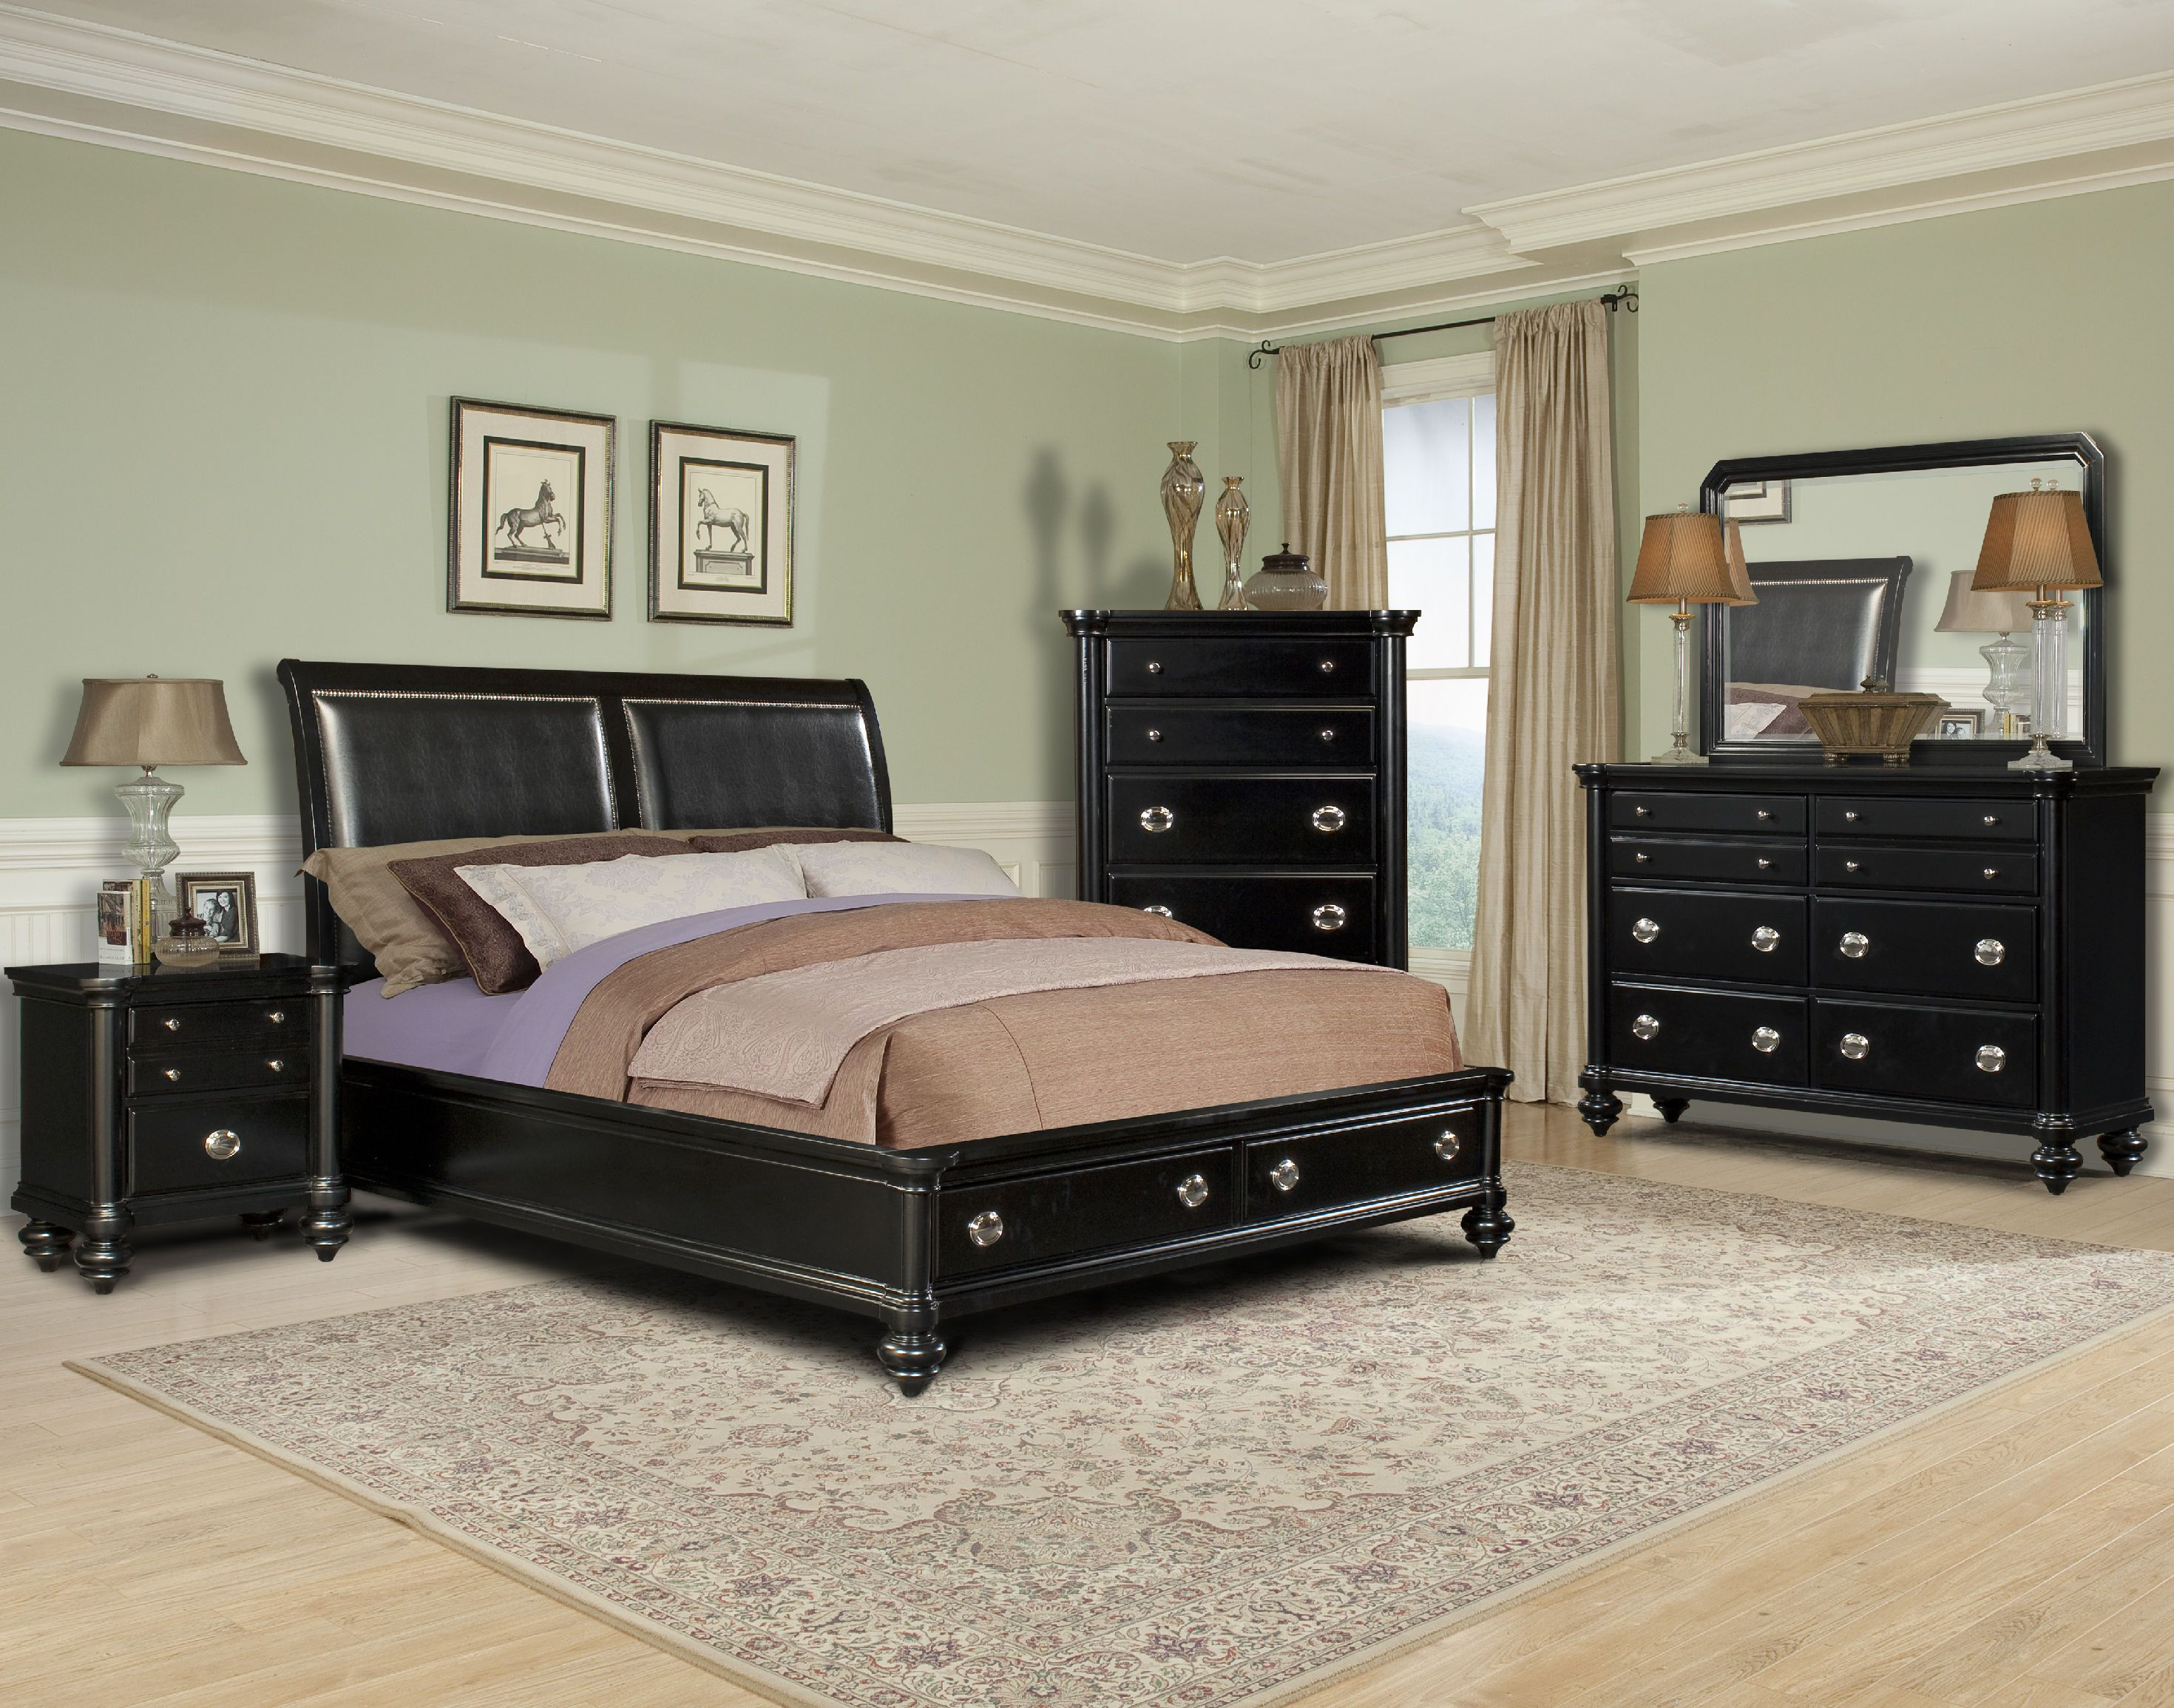 The Danbury Bedroom Collection Features Rich, Black Hues And Modern  Elements While The Silver Hardware